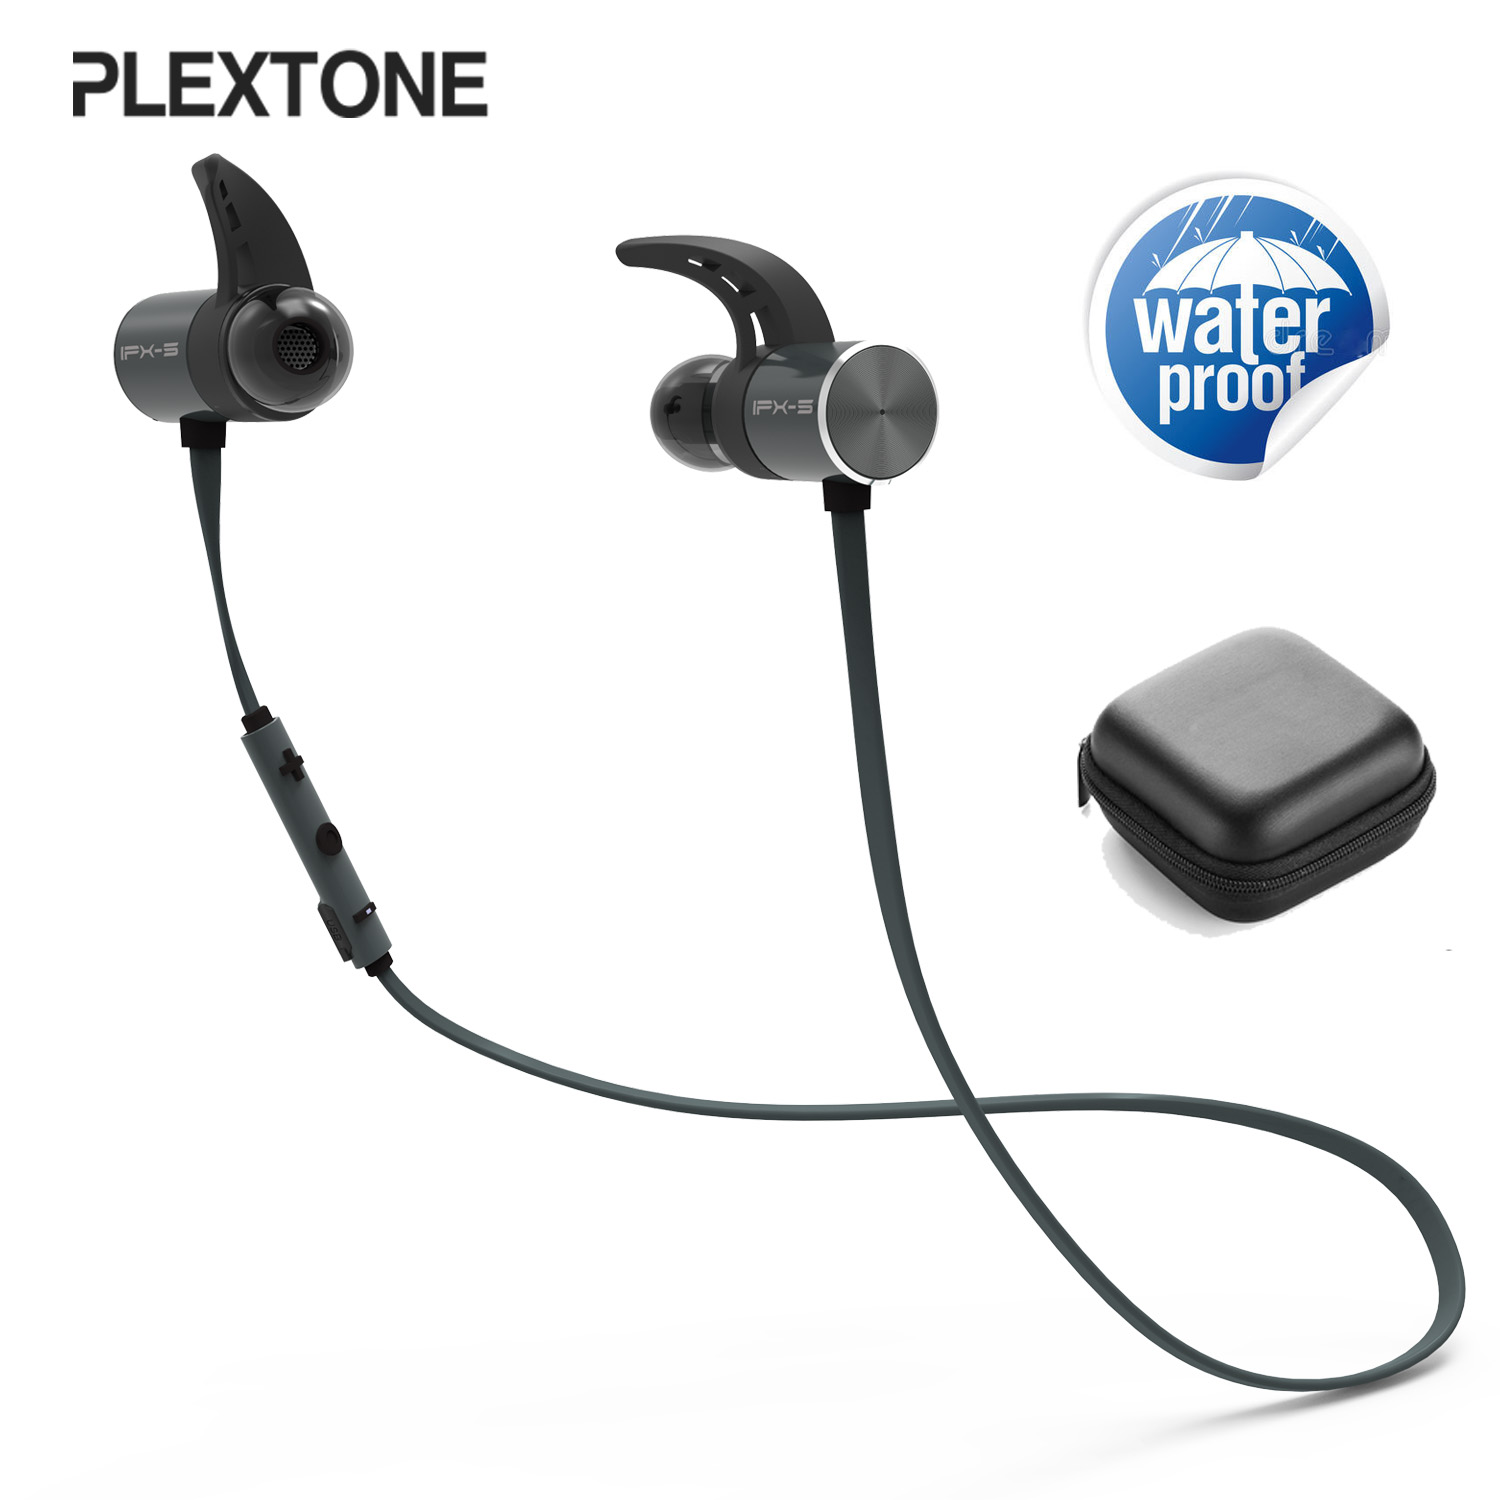 BX343 Bluetooth Earphone Wireless Headphone IPX5 Waterproof HIFI Stereo Earbuds Magnetic Headset With Microphone For phone Sport hbs 760 bluetooth 4 0 headset headphone wireless stereo hifi handsfree neckband sweatproof sport earphone earbuds for call music